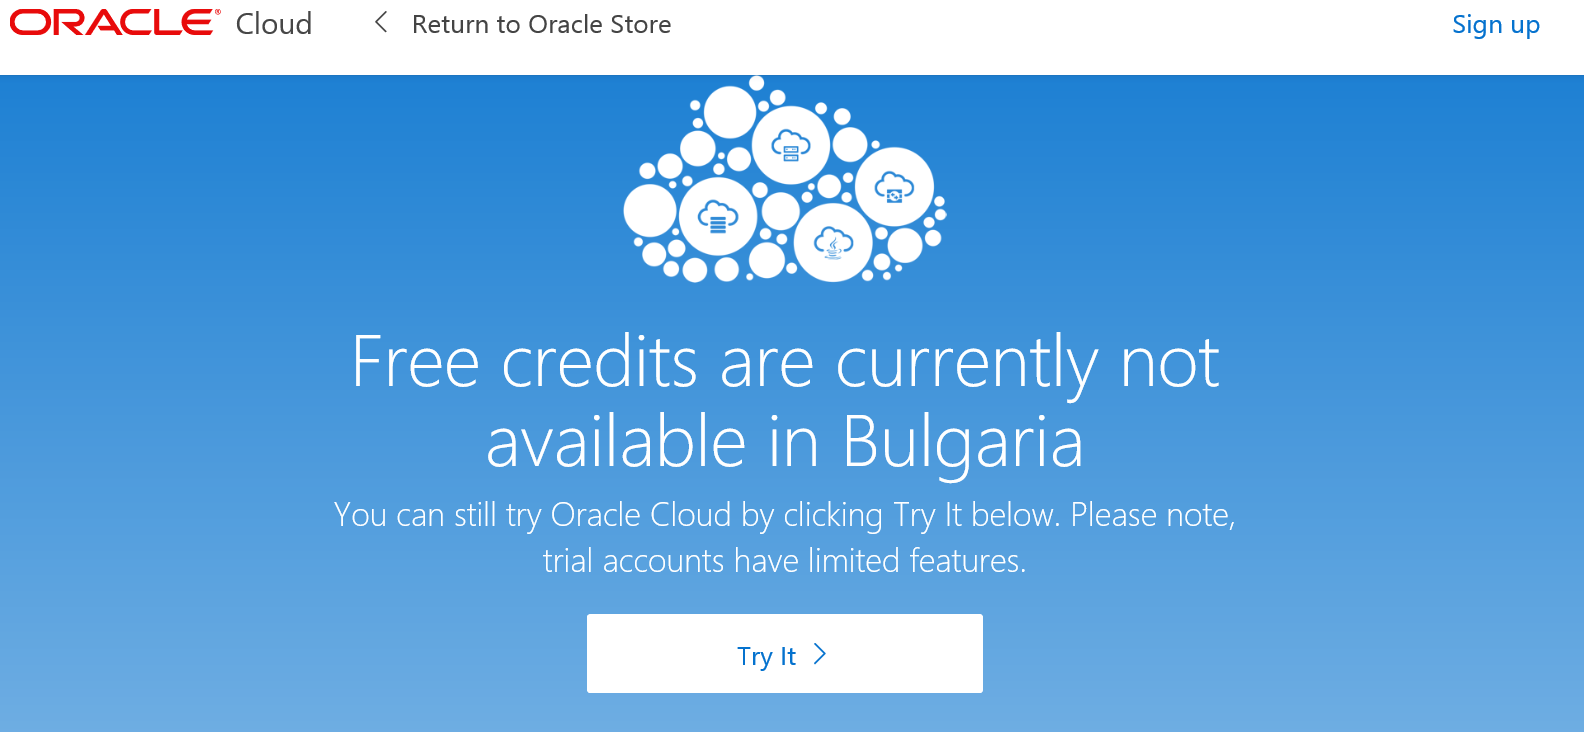 Bulgarian Oracle Users are forbidden for free credits!